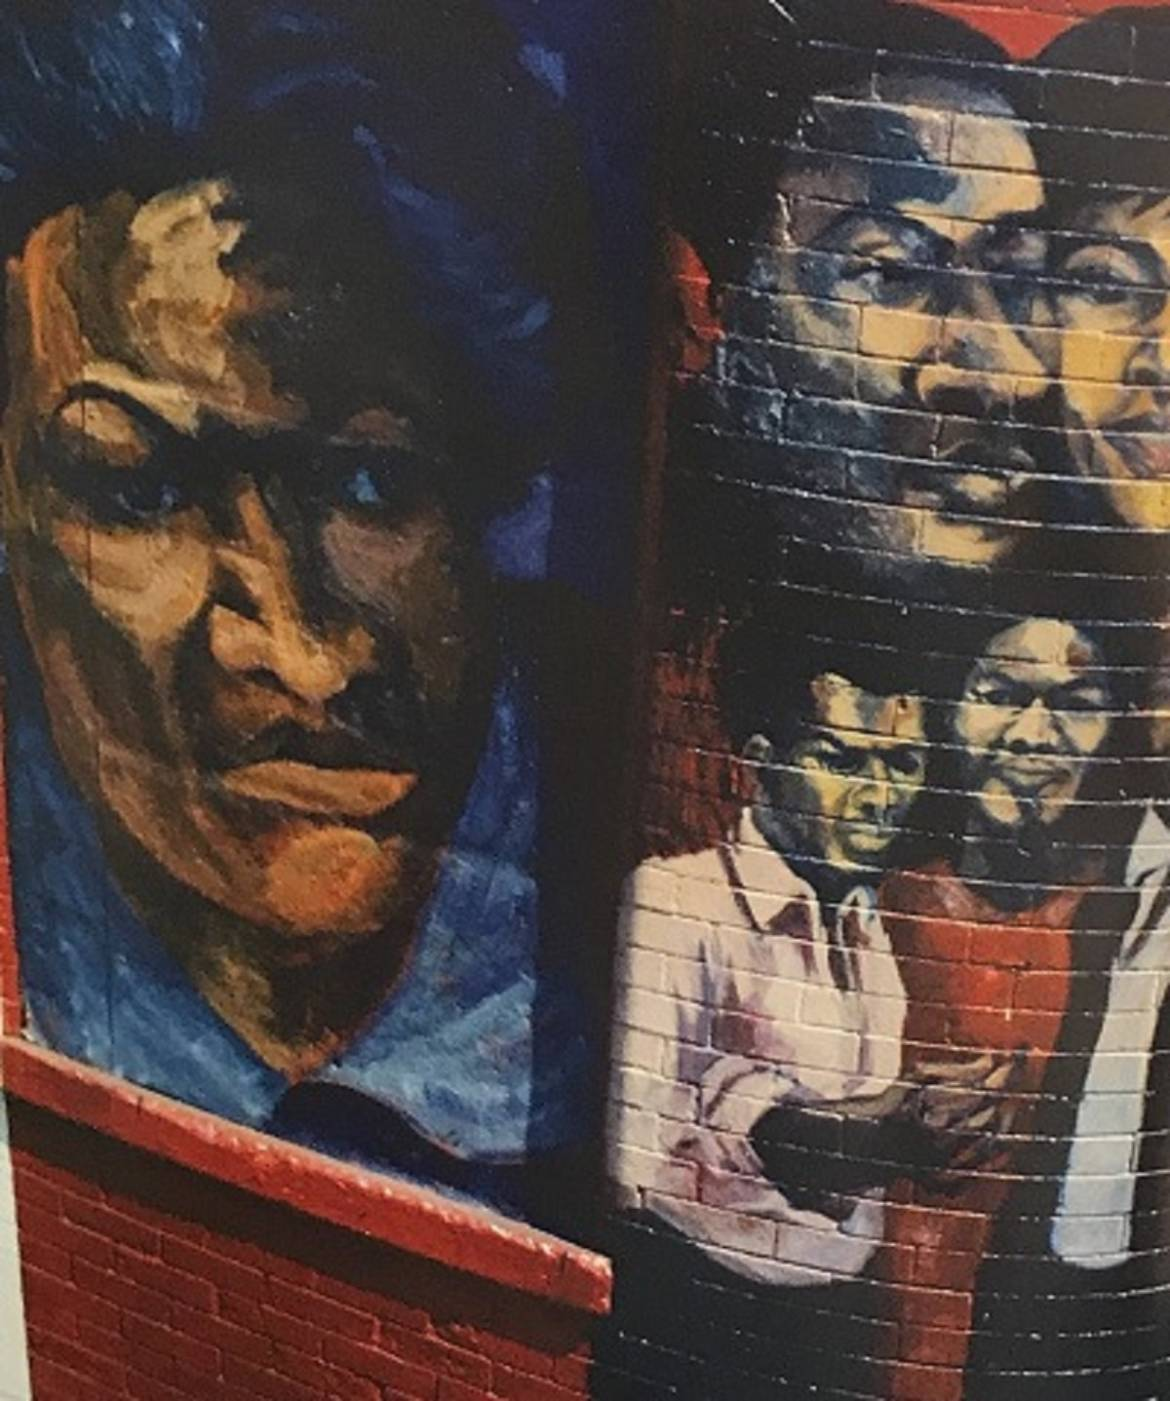 """Book Review: """"The Wall of Respect:  Public Art and Black Liberation in 1960s Chicago,"""" edited by Abdul Alkalimat, Romi Crawford, and Rebecca Zorach"""